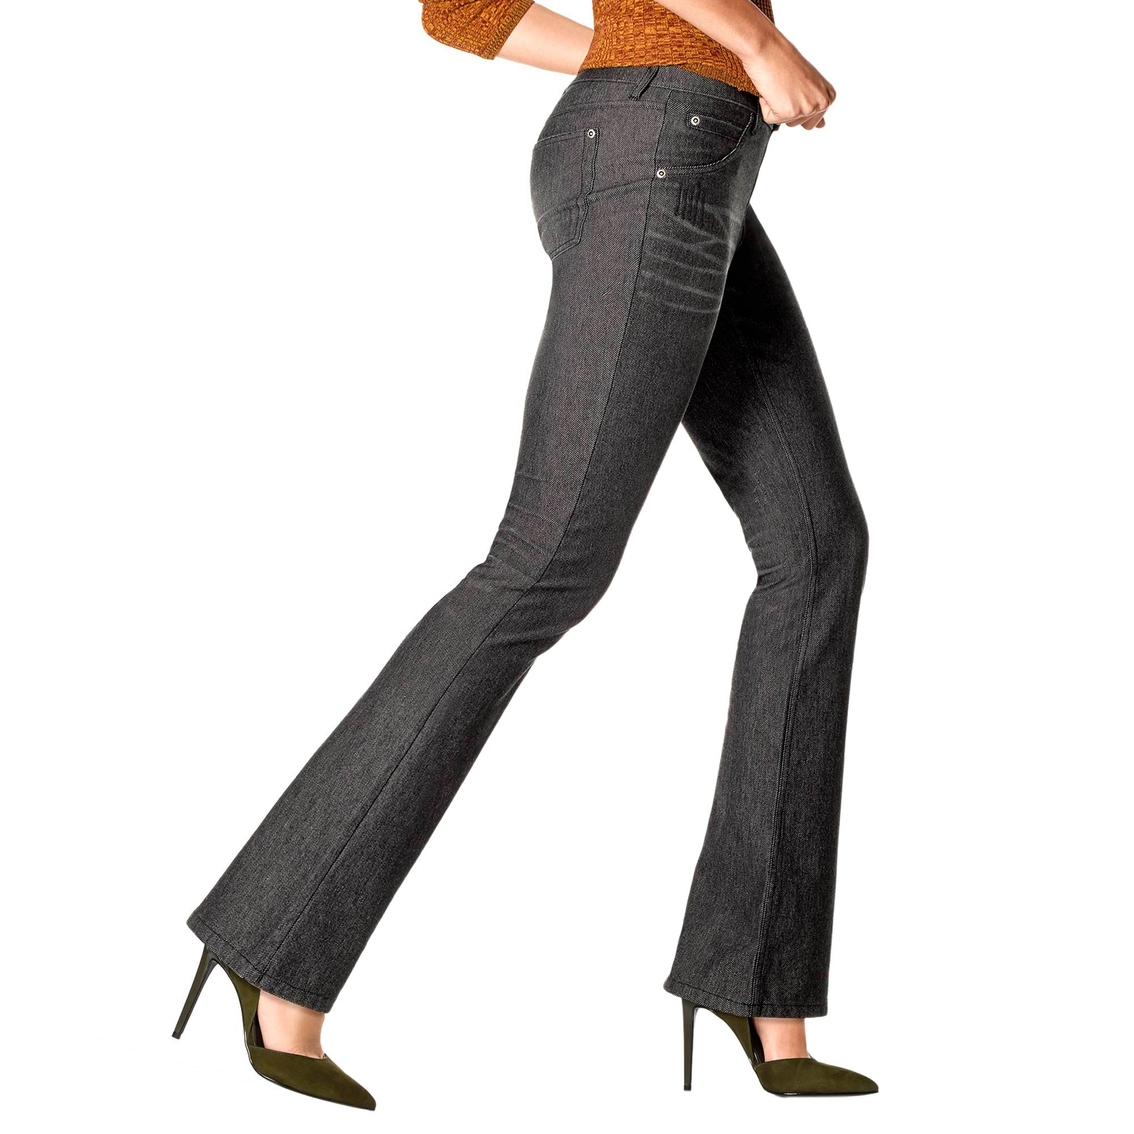 SHOP DENIM FIT GUIDE» are a fun statement pant perfect for any occasion. Add some bright colors and pair with neutral tops, or rock our jegging jeans that go with any top or shoe style. Skinny Jeans, Straight Jeans, Bootcut Jeans, Flare Jeans, maurices Jeans, Silver Jeans Co., Vigoss Jeans. Your store stylist is just a click away BOOK.